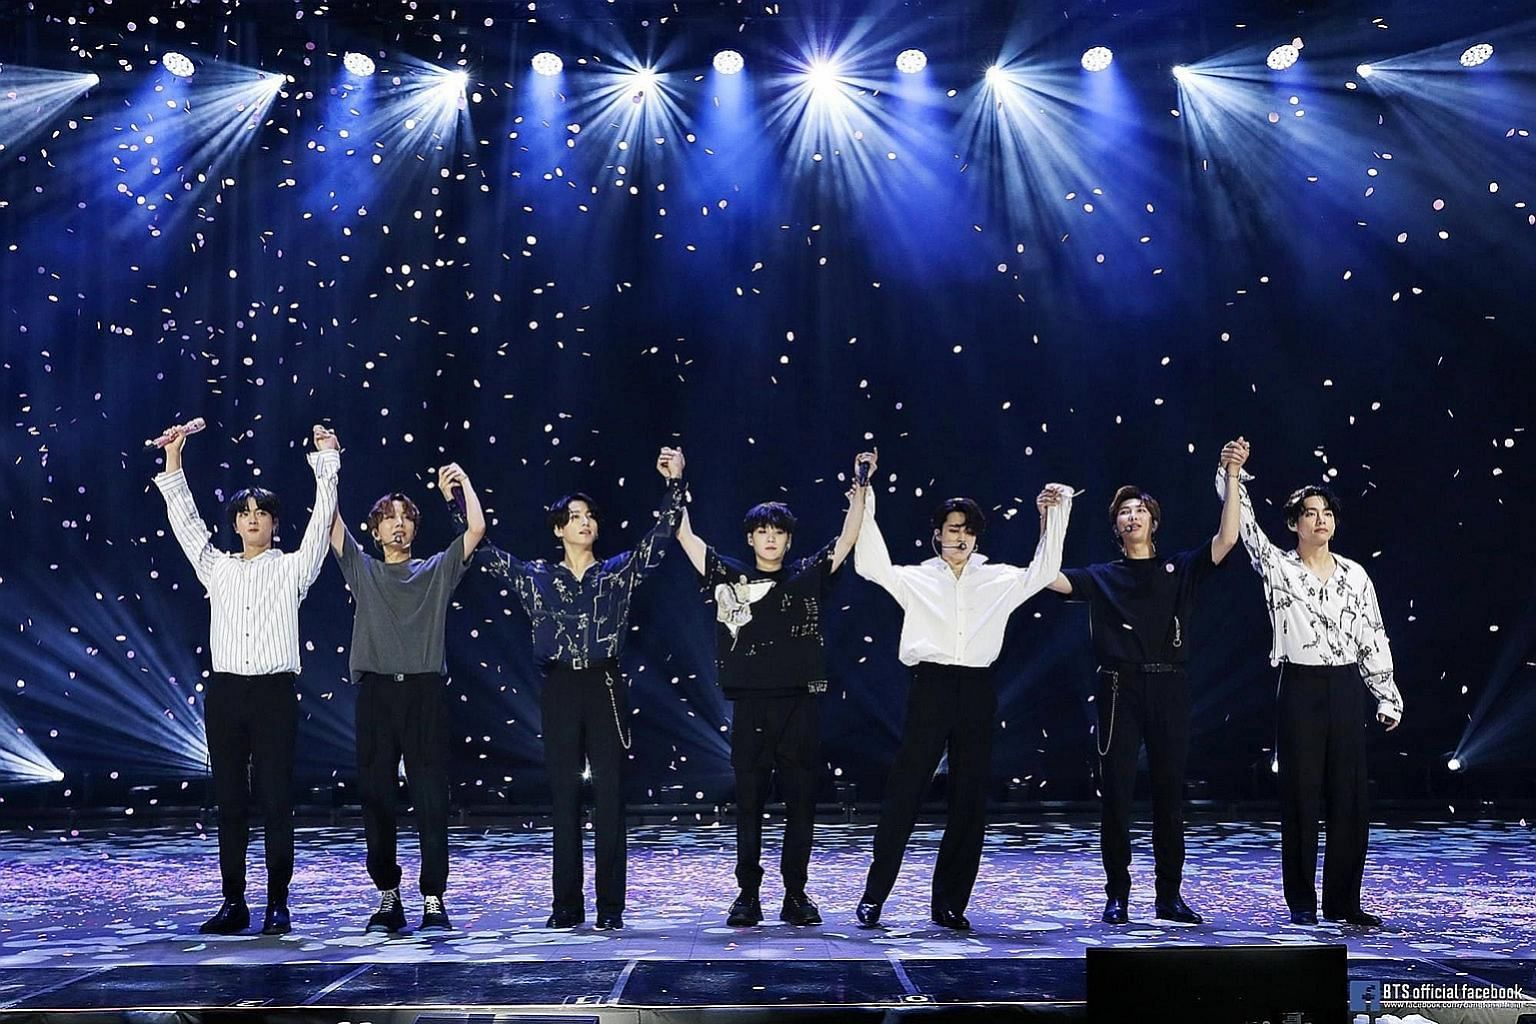 Korean boy band BTS' successful virtual concert in June offers lessons for the Government, said Mr Baey Yam Keng.